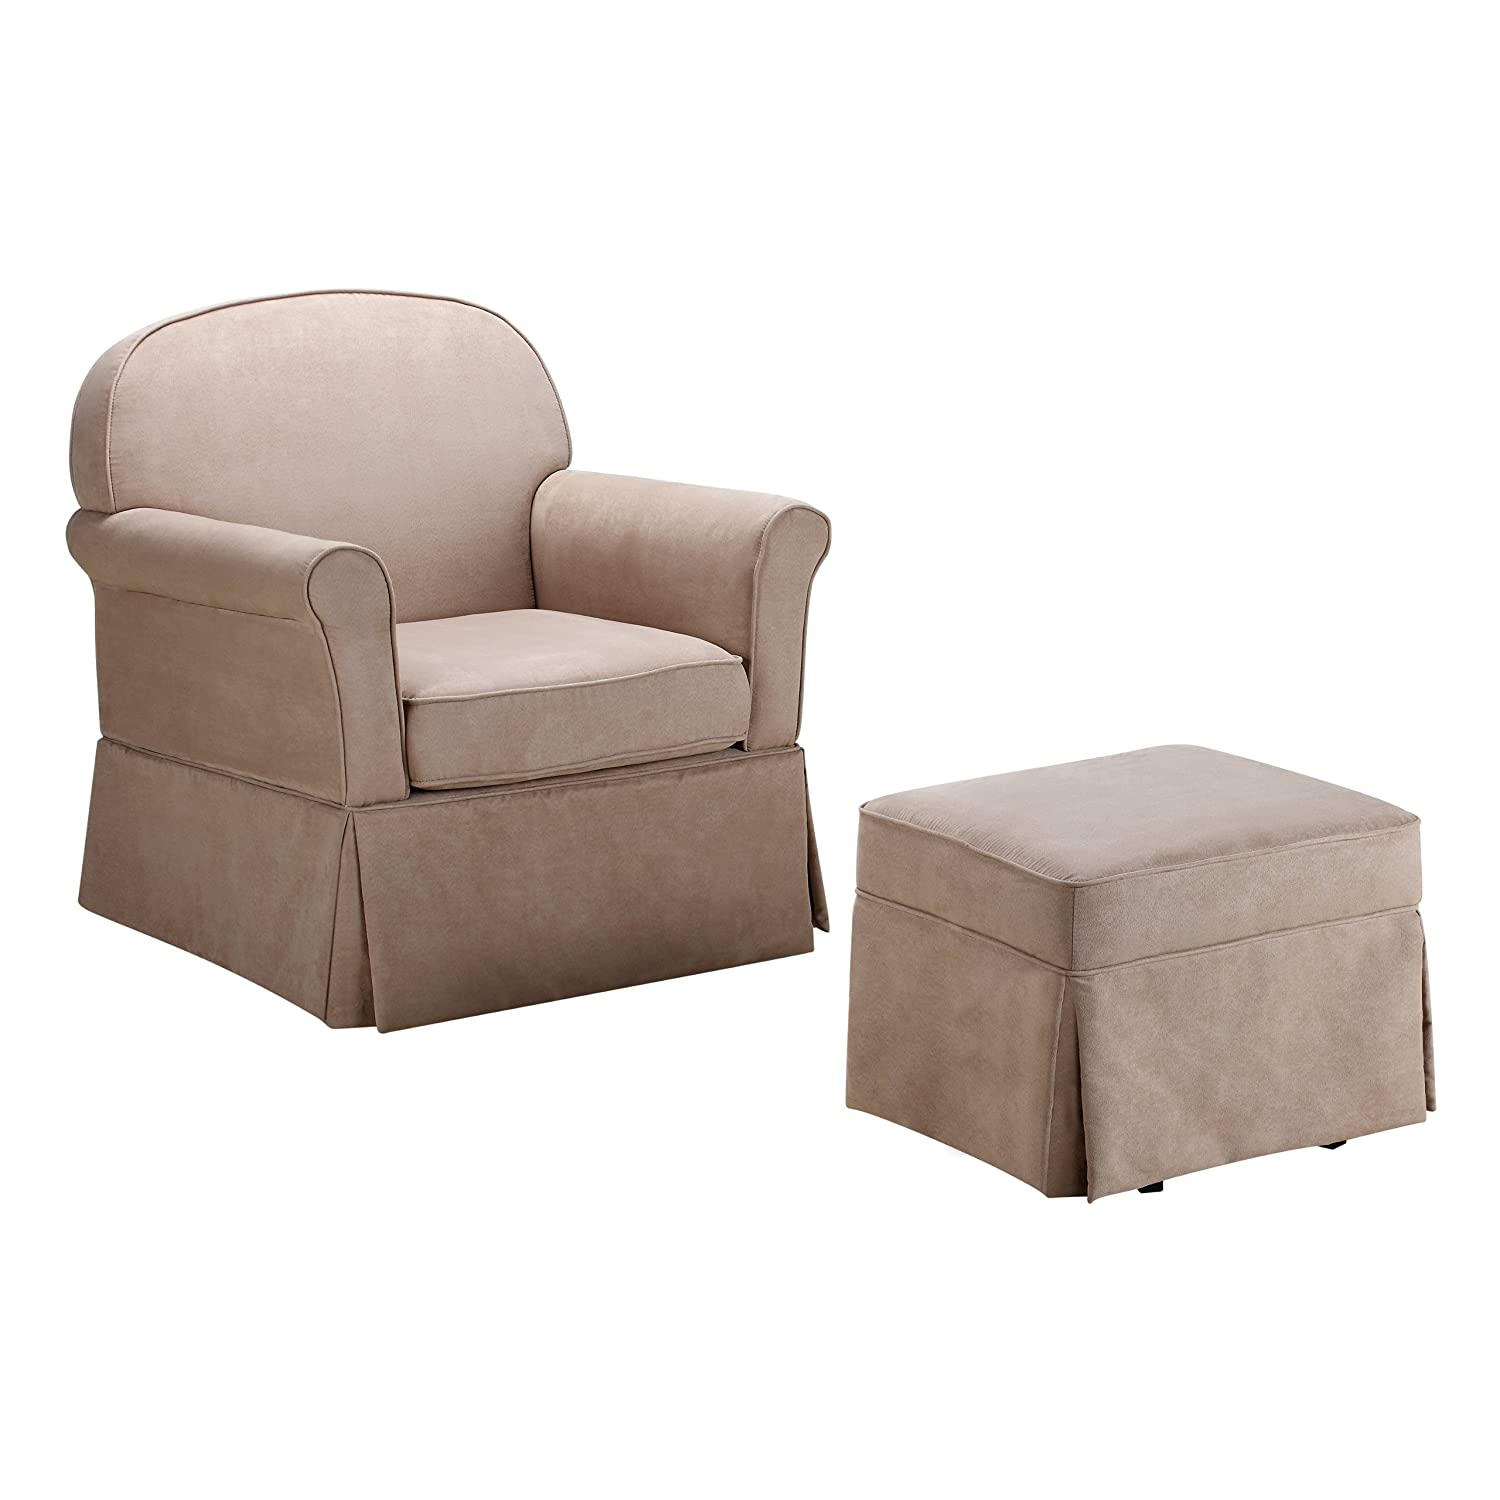 Amazon.com: Baby Relax Swivel Glider and Ottoman Set, Hickory Brown ...